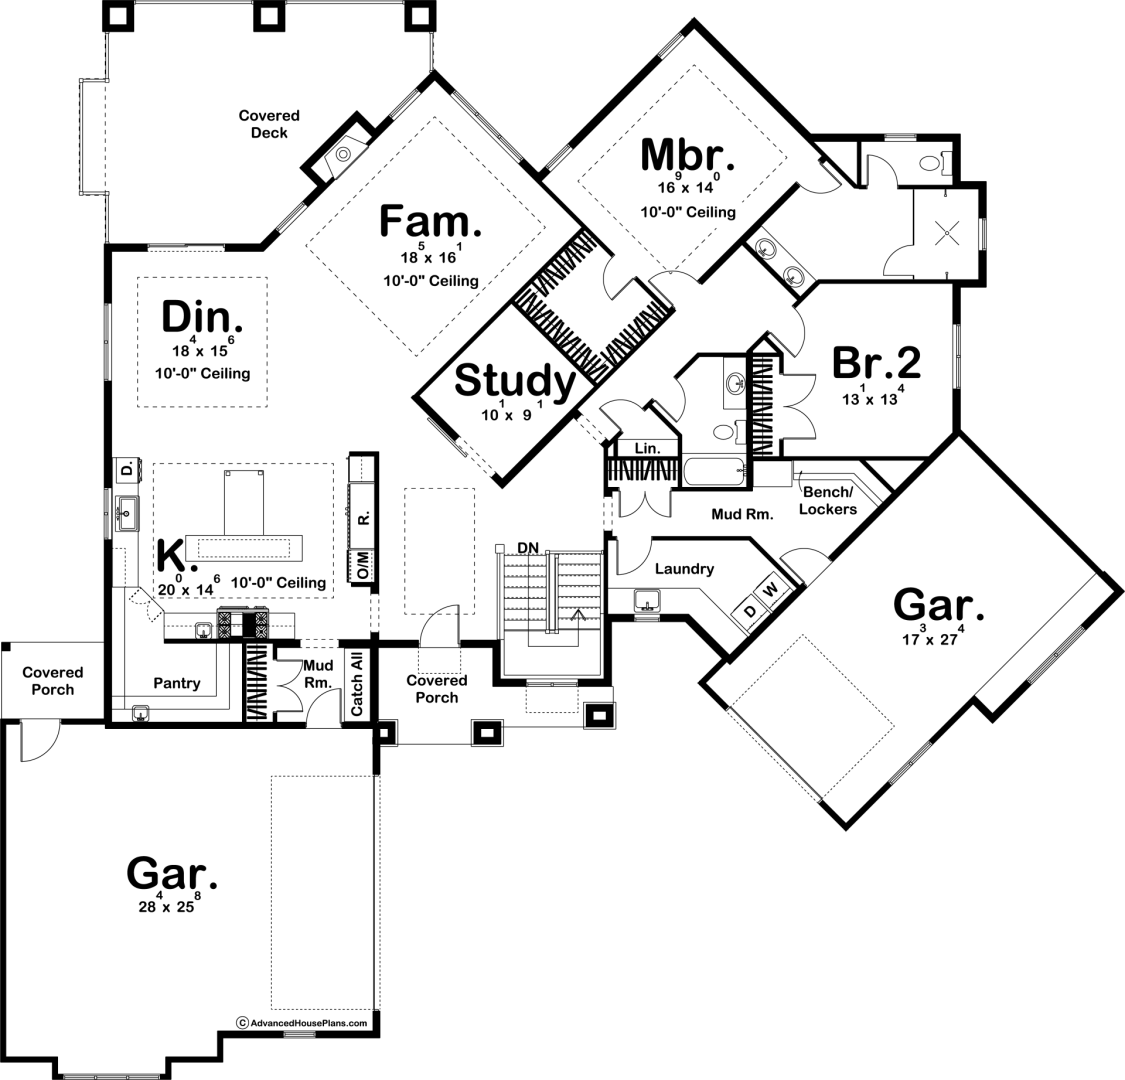 Birkdale 1 Story Modern Farmhouse House Plan (With images